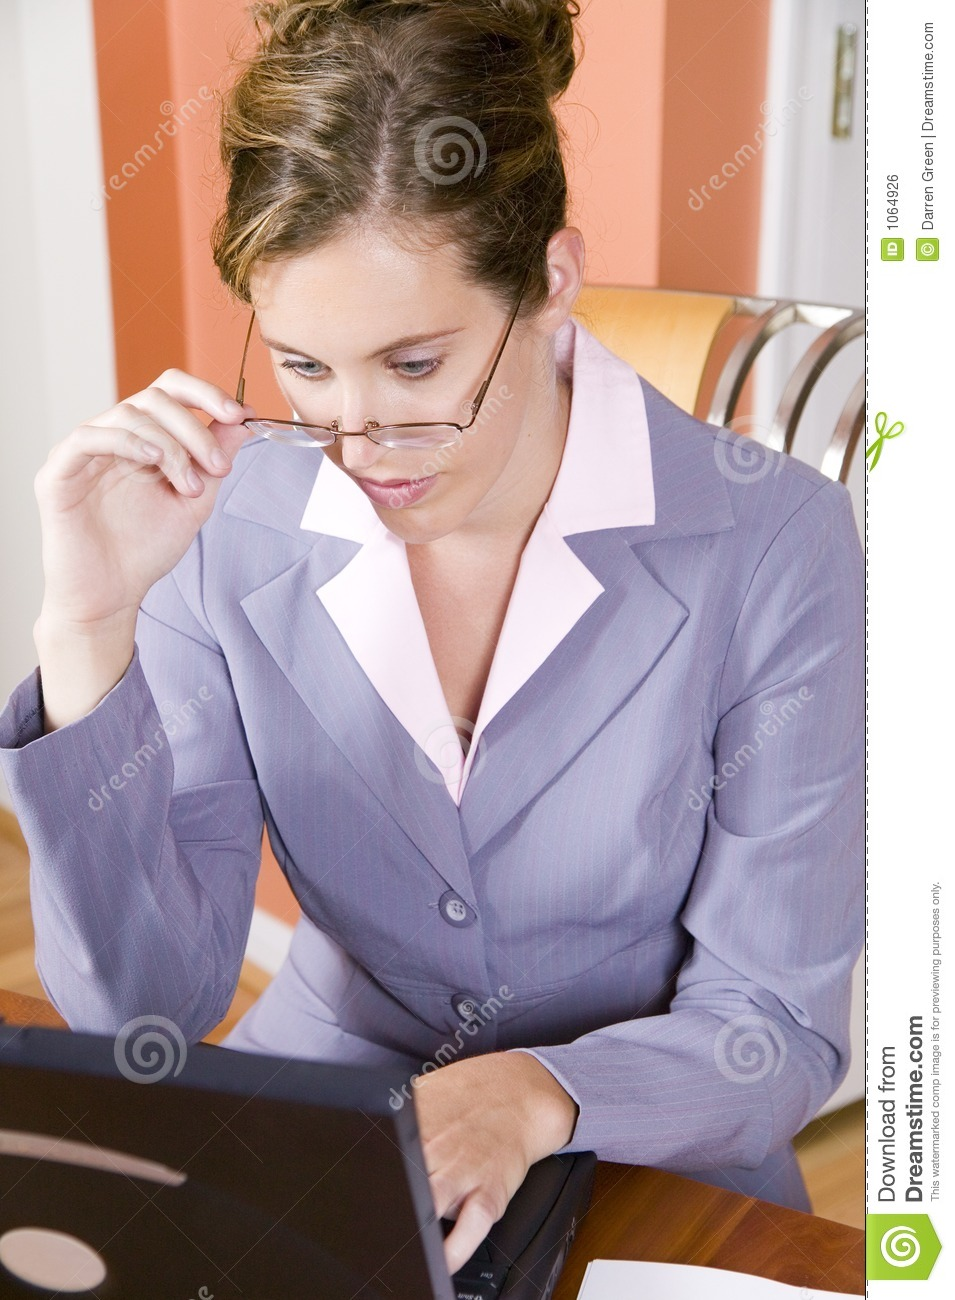 Young woman in business suit working from home